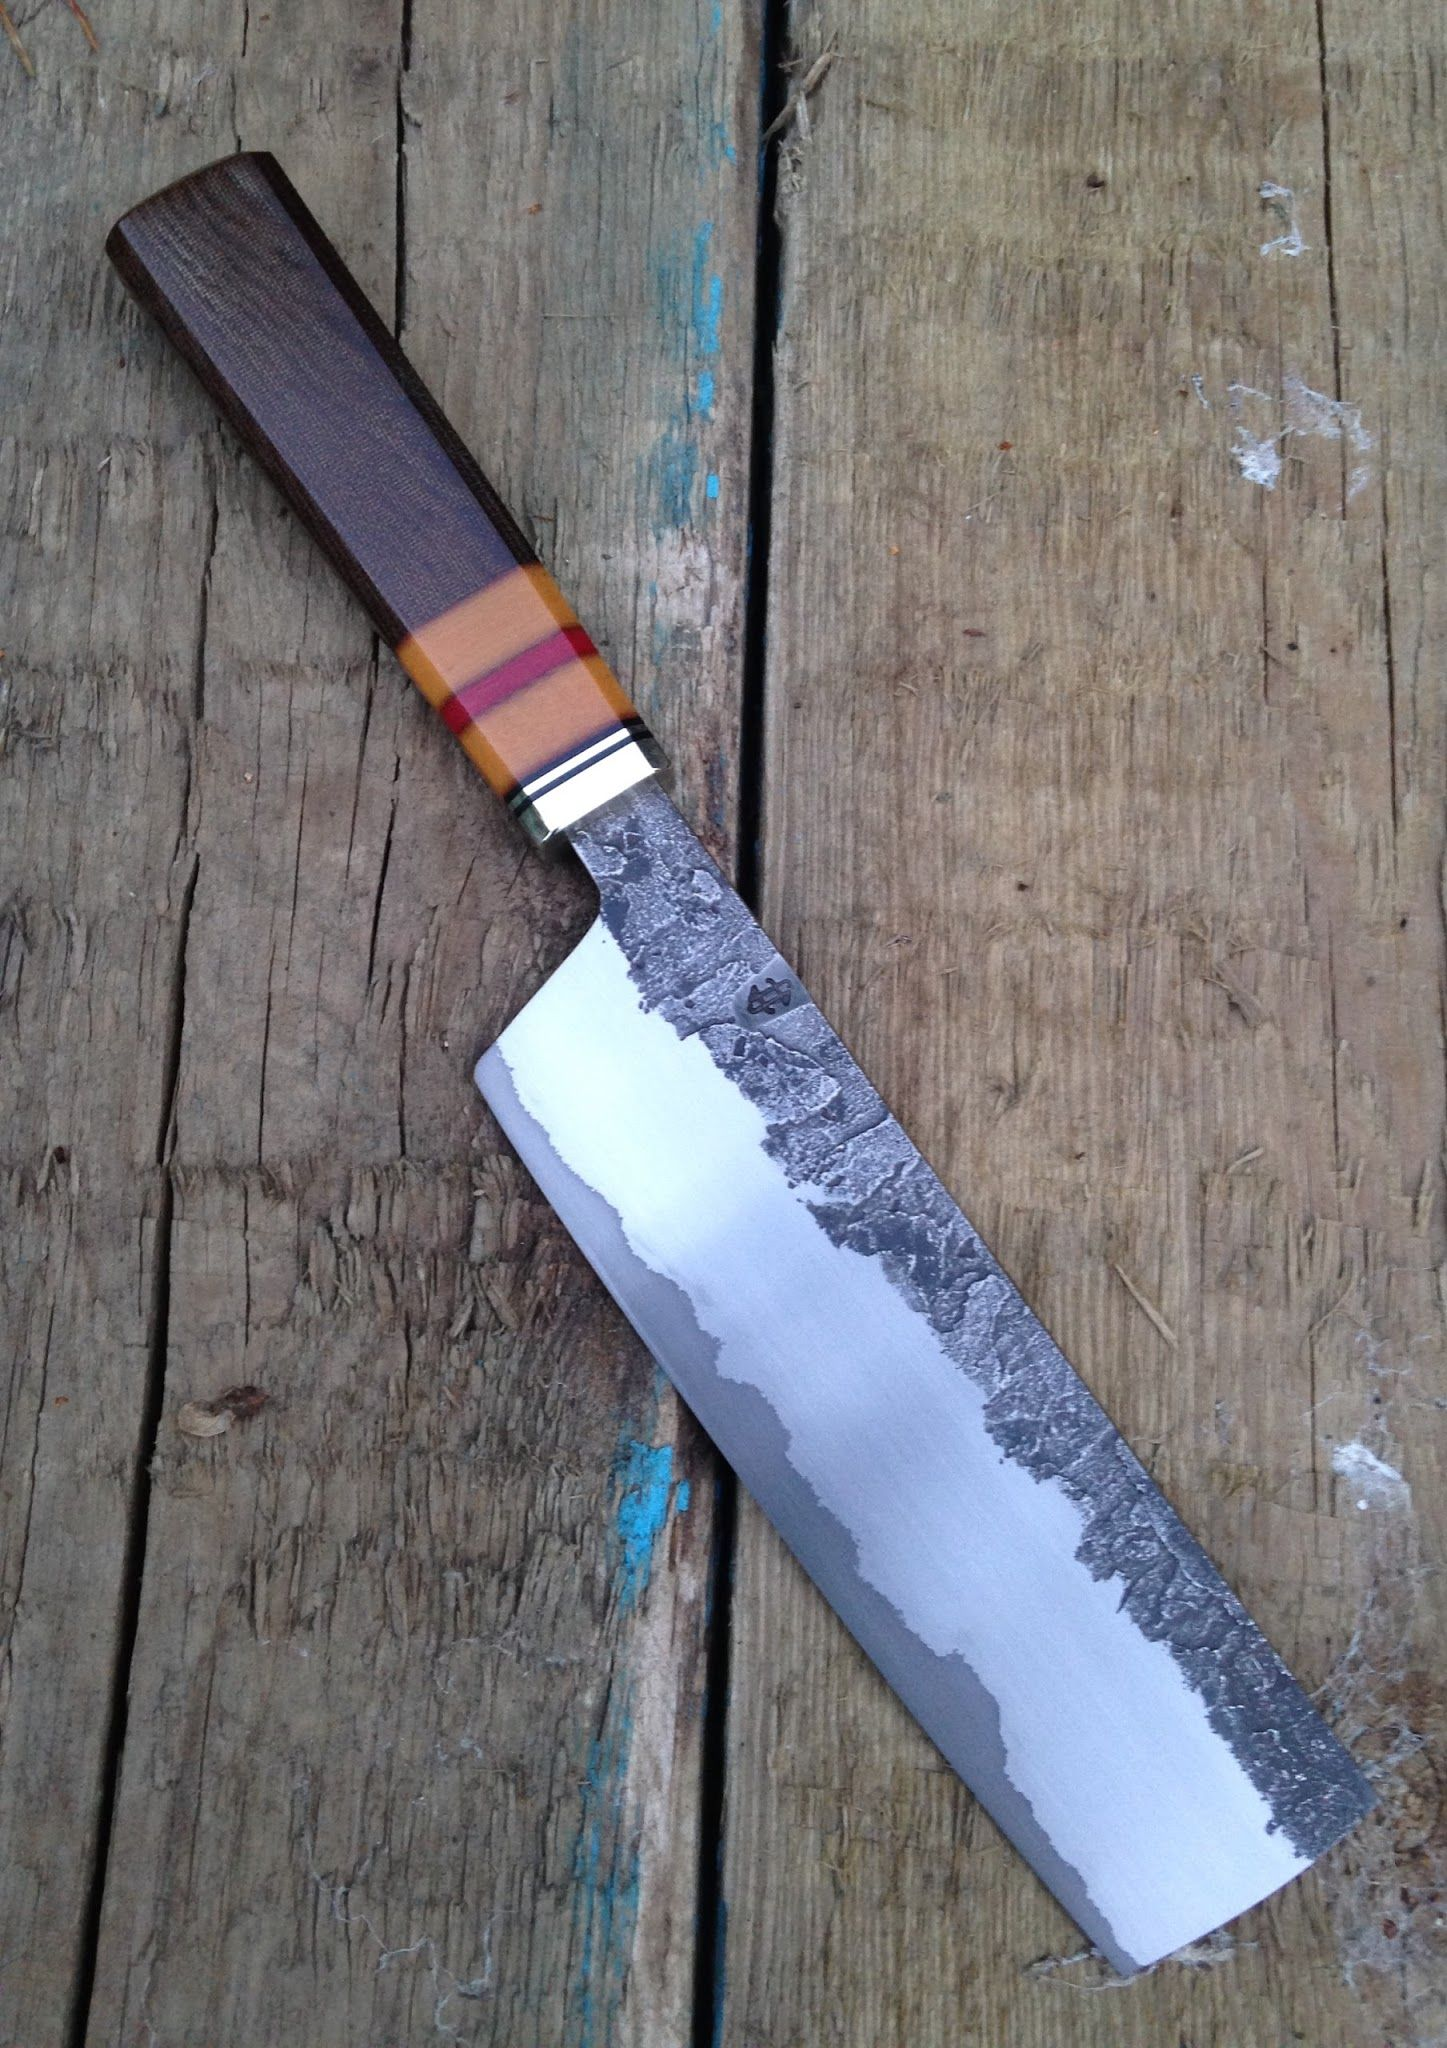 New To This Forum And A Japanese Style Kitchenknife   Handmade U0026 Custom  Knives   Edge